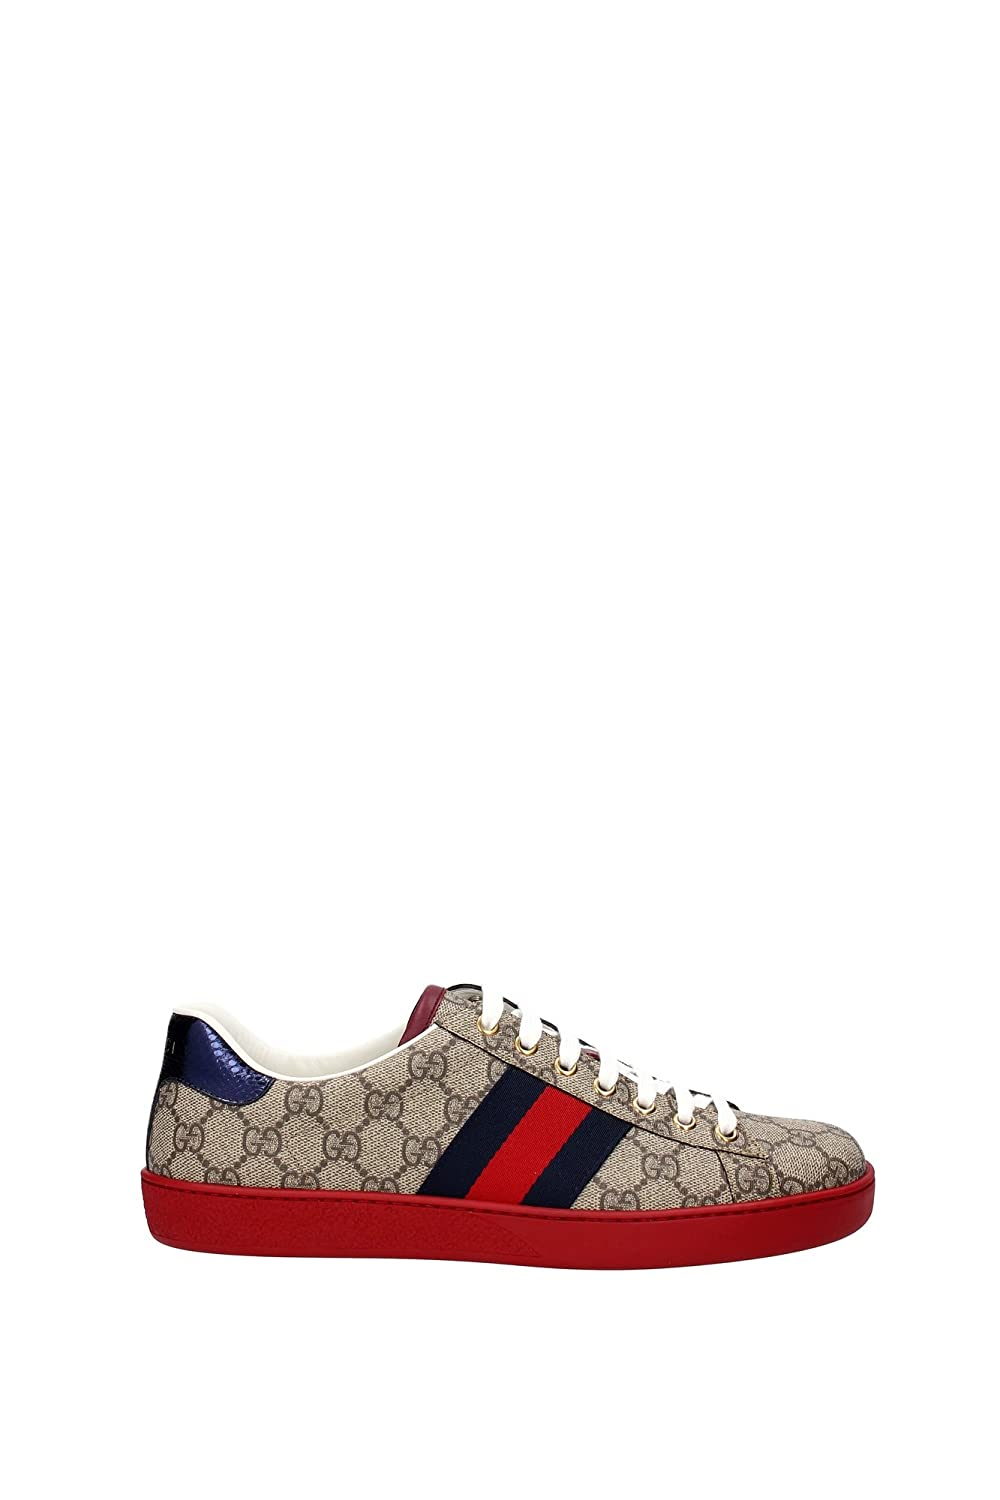 Gucci Sneakers Homme - (429445K2LH09767) EU  Amazon.fr  Chaussures et Sacs 66a30ae6ebd